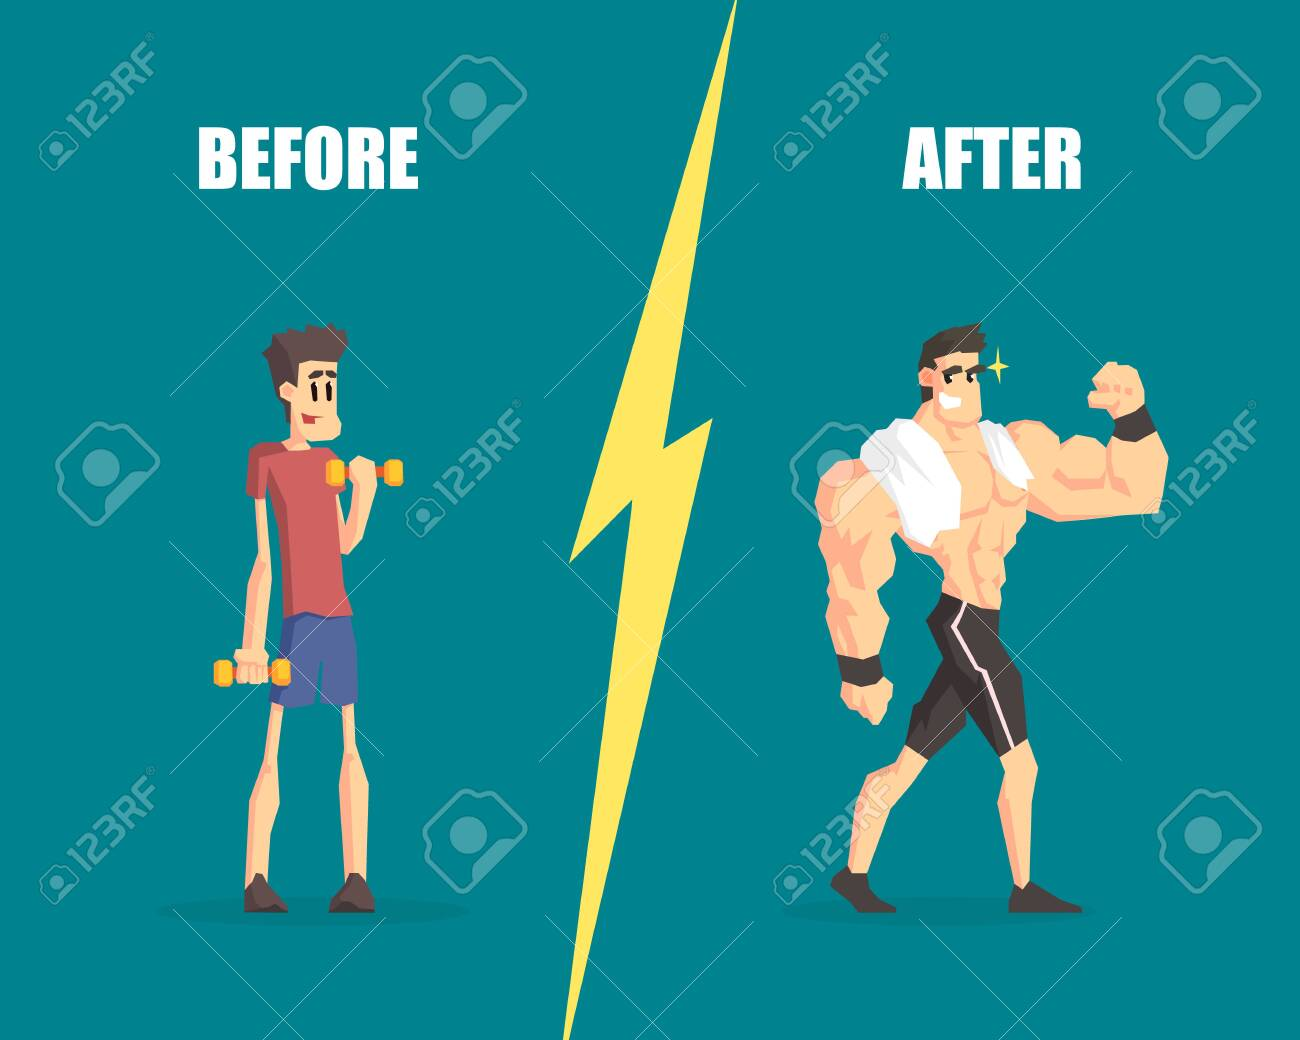 Weak and Muscular Men, Man Before and After Training, Demonstration of Progress in Training - 122450134